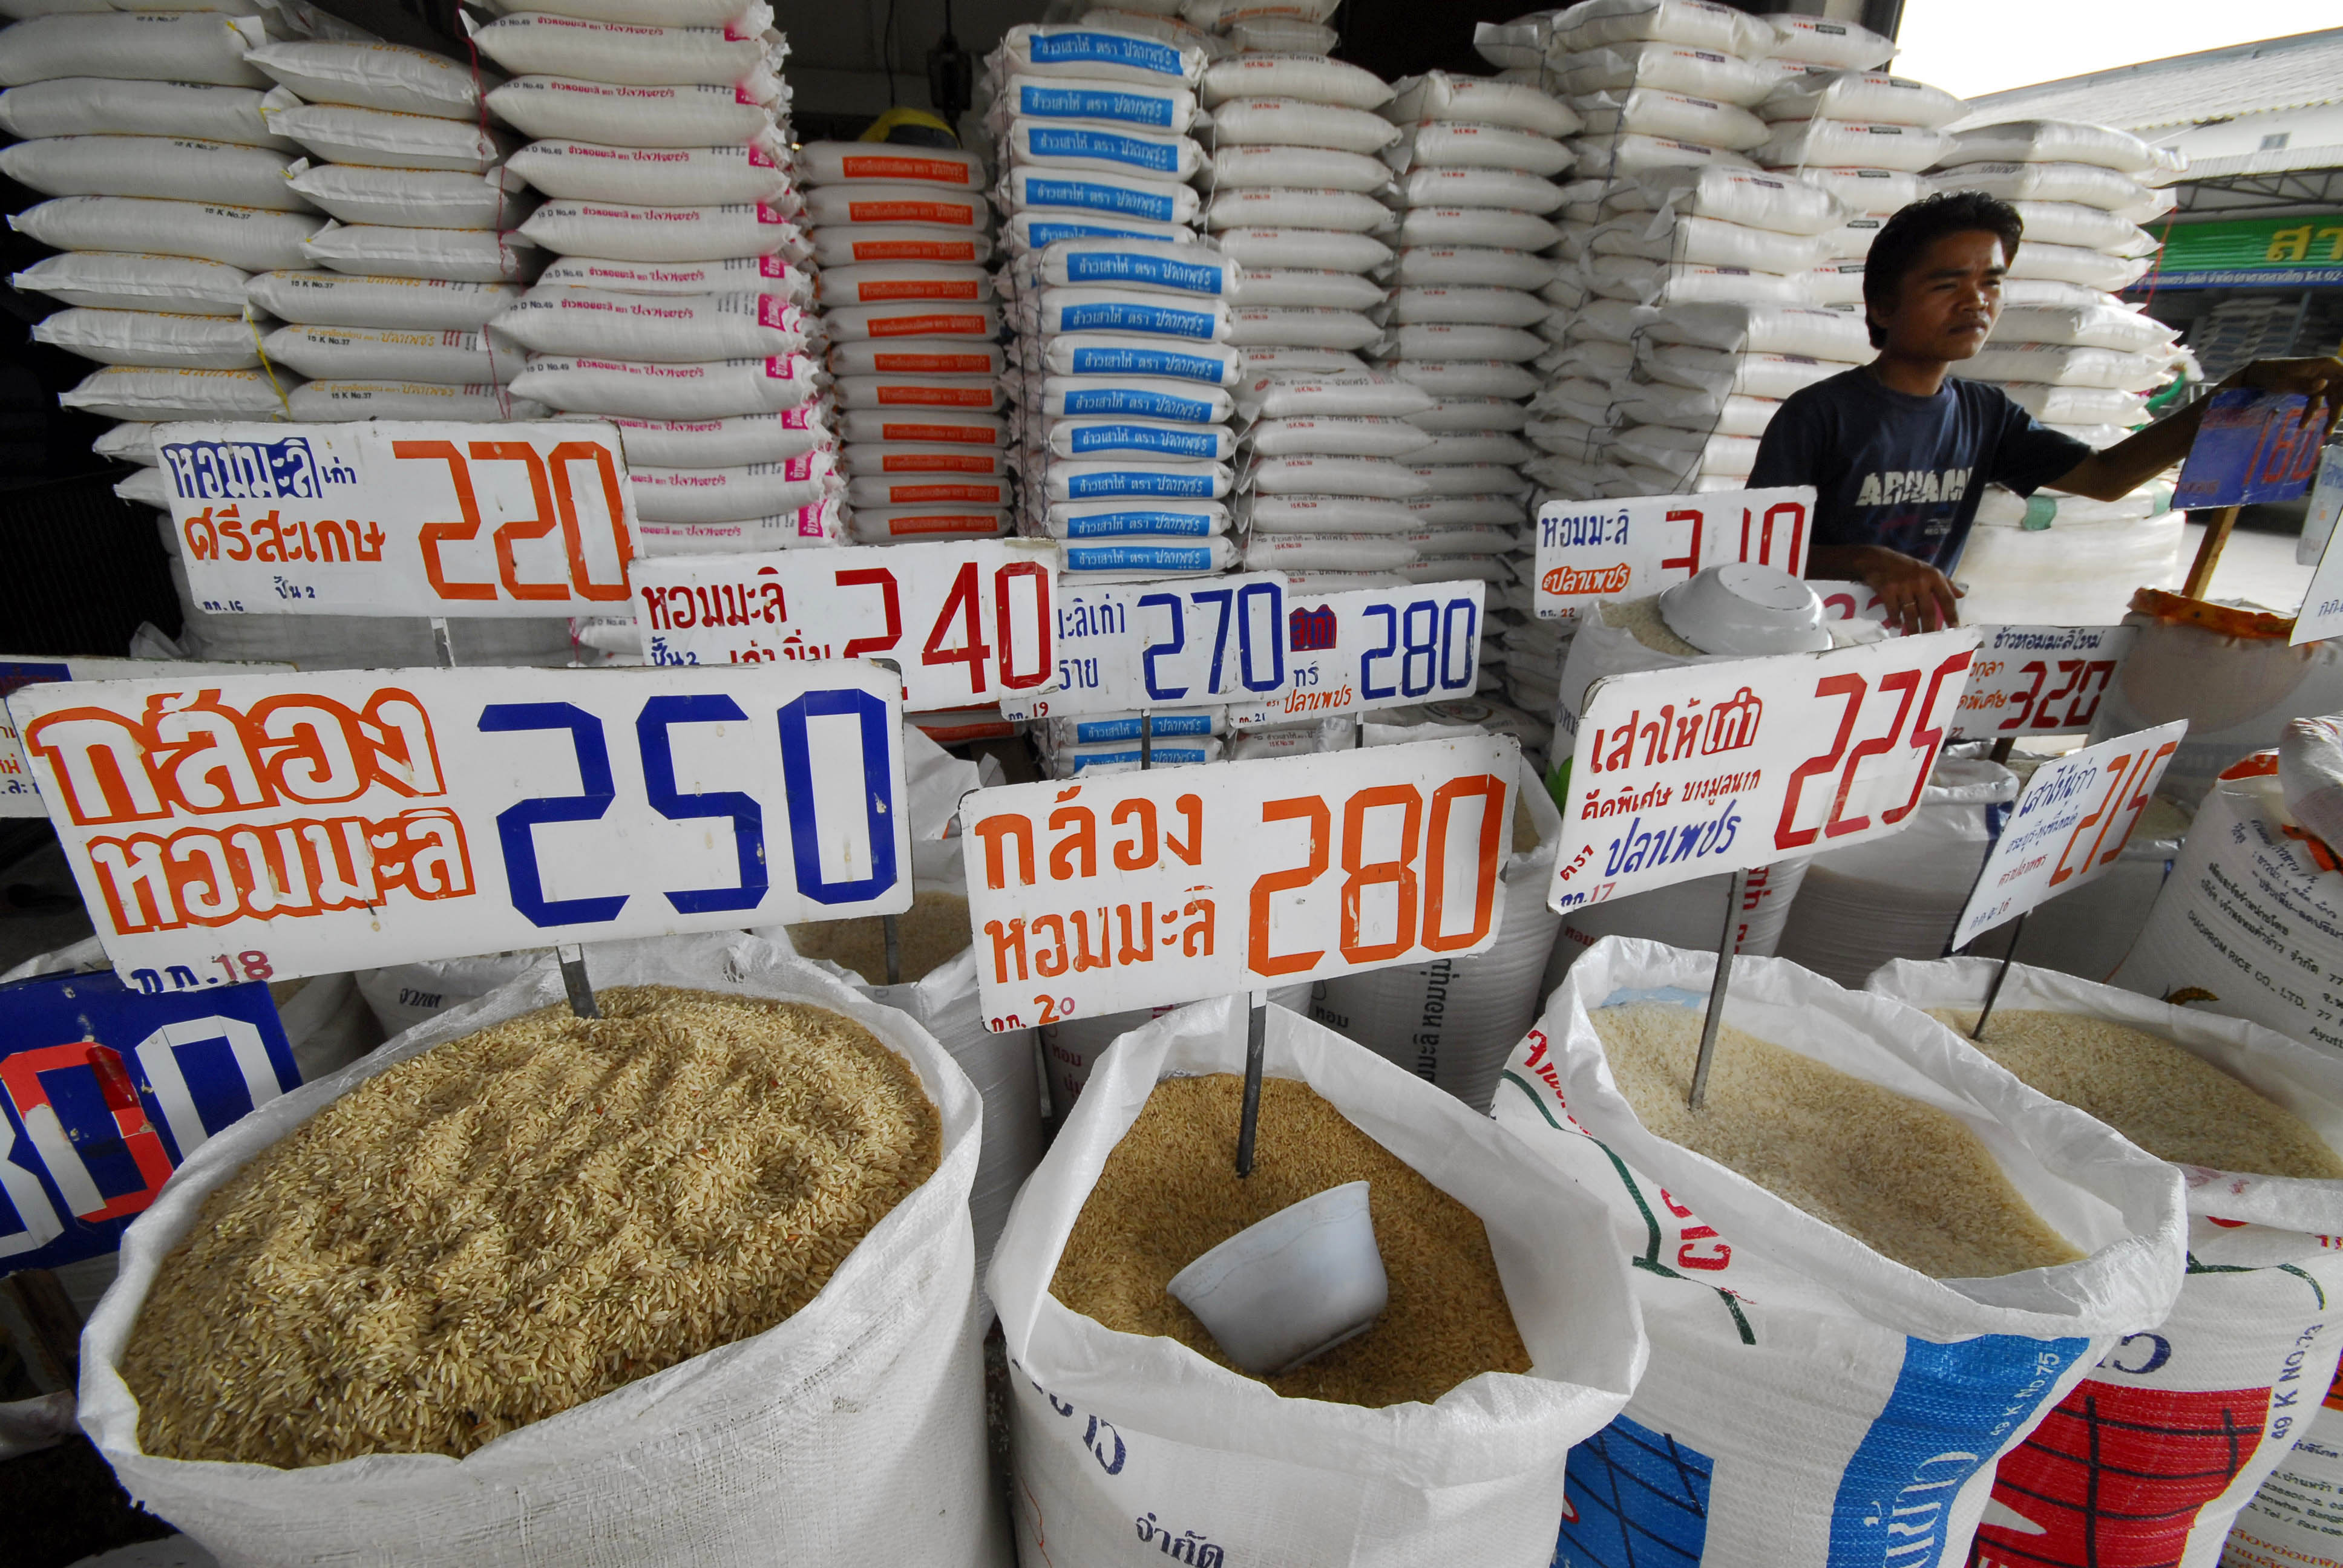 A vendor sells rice at at a shop in a produce market in Nawa